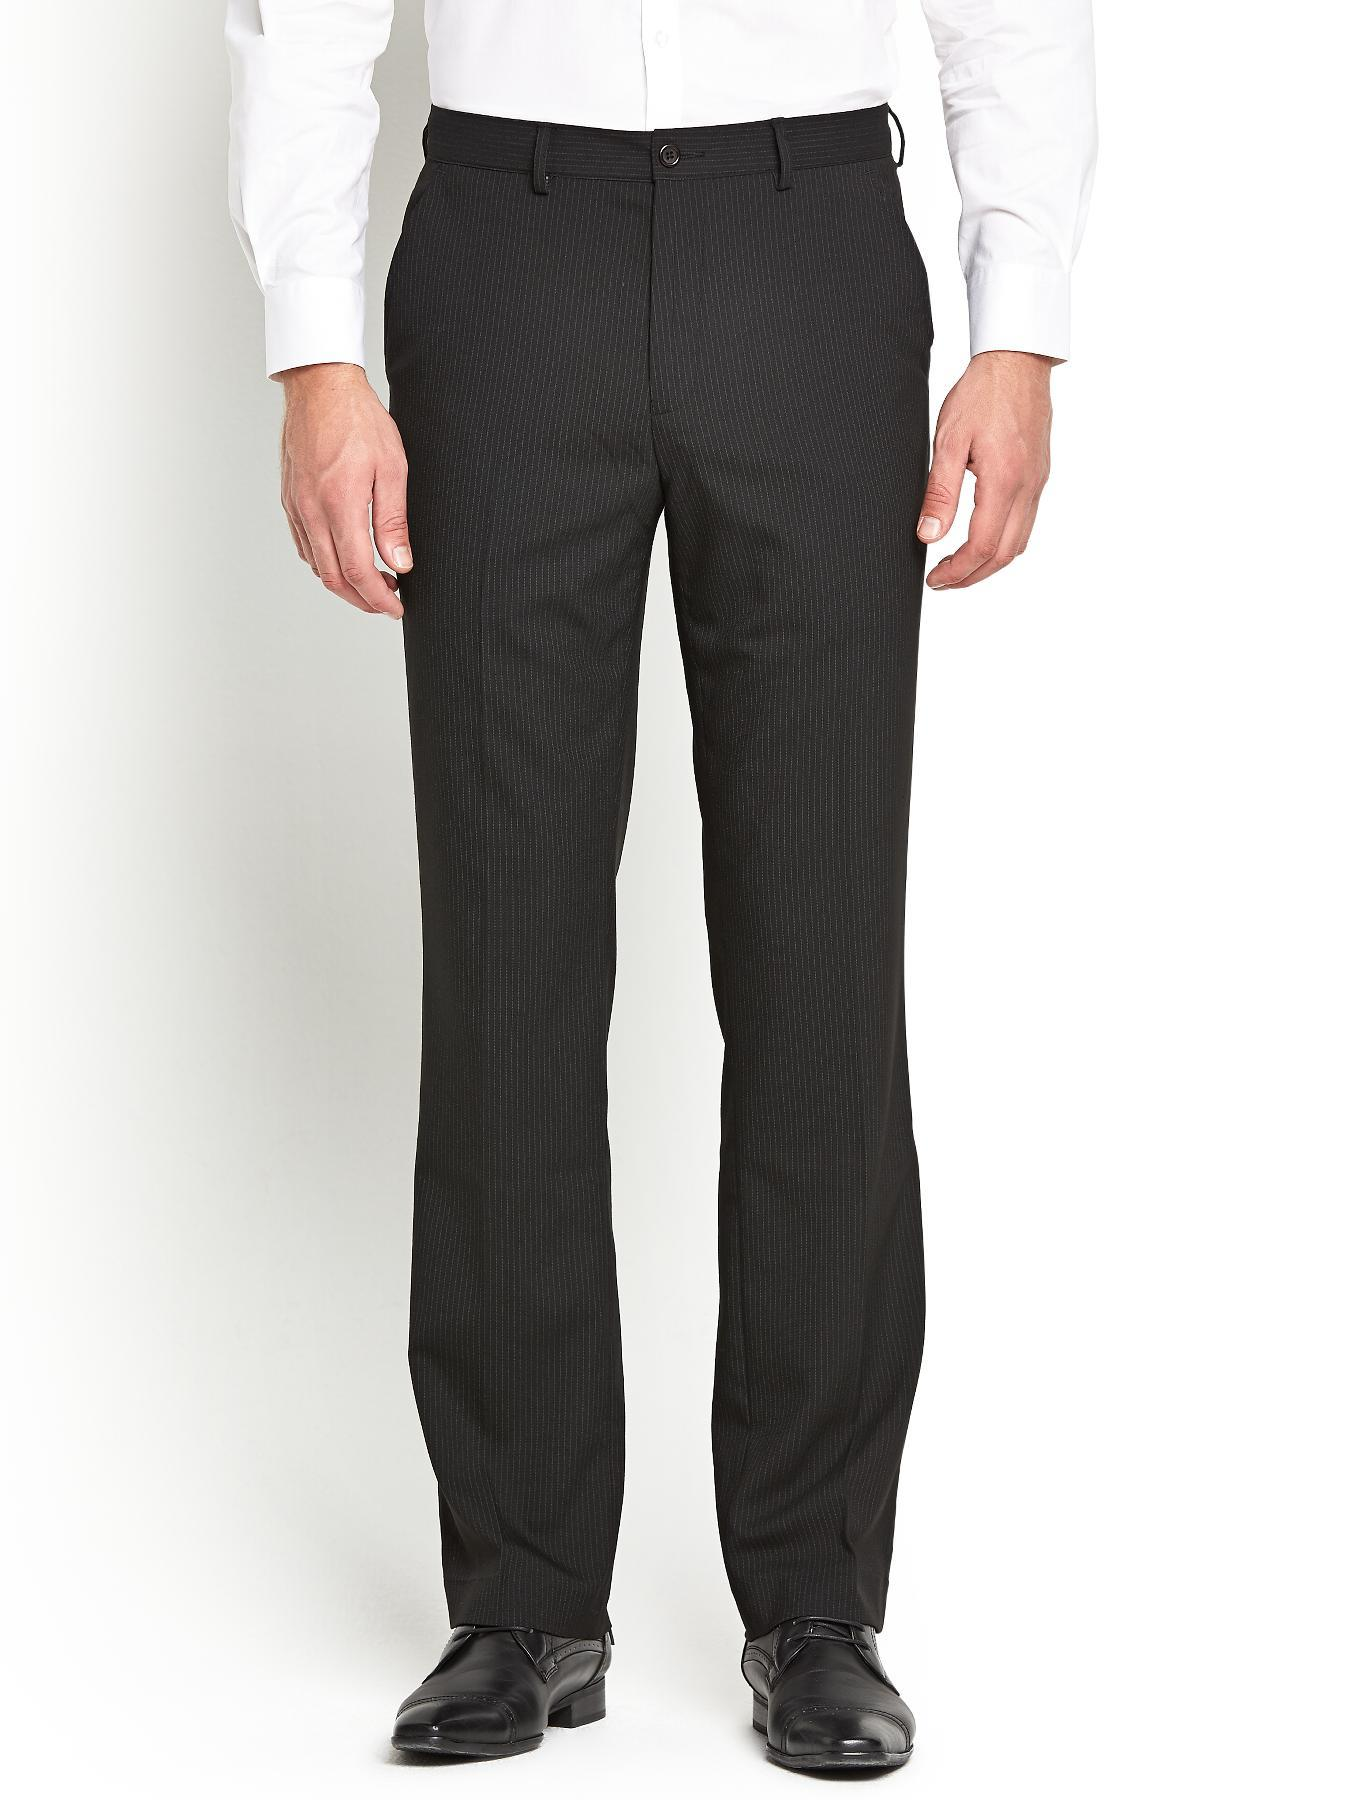 Mens Flat Front Smart Trousers, Black